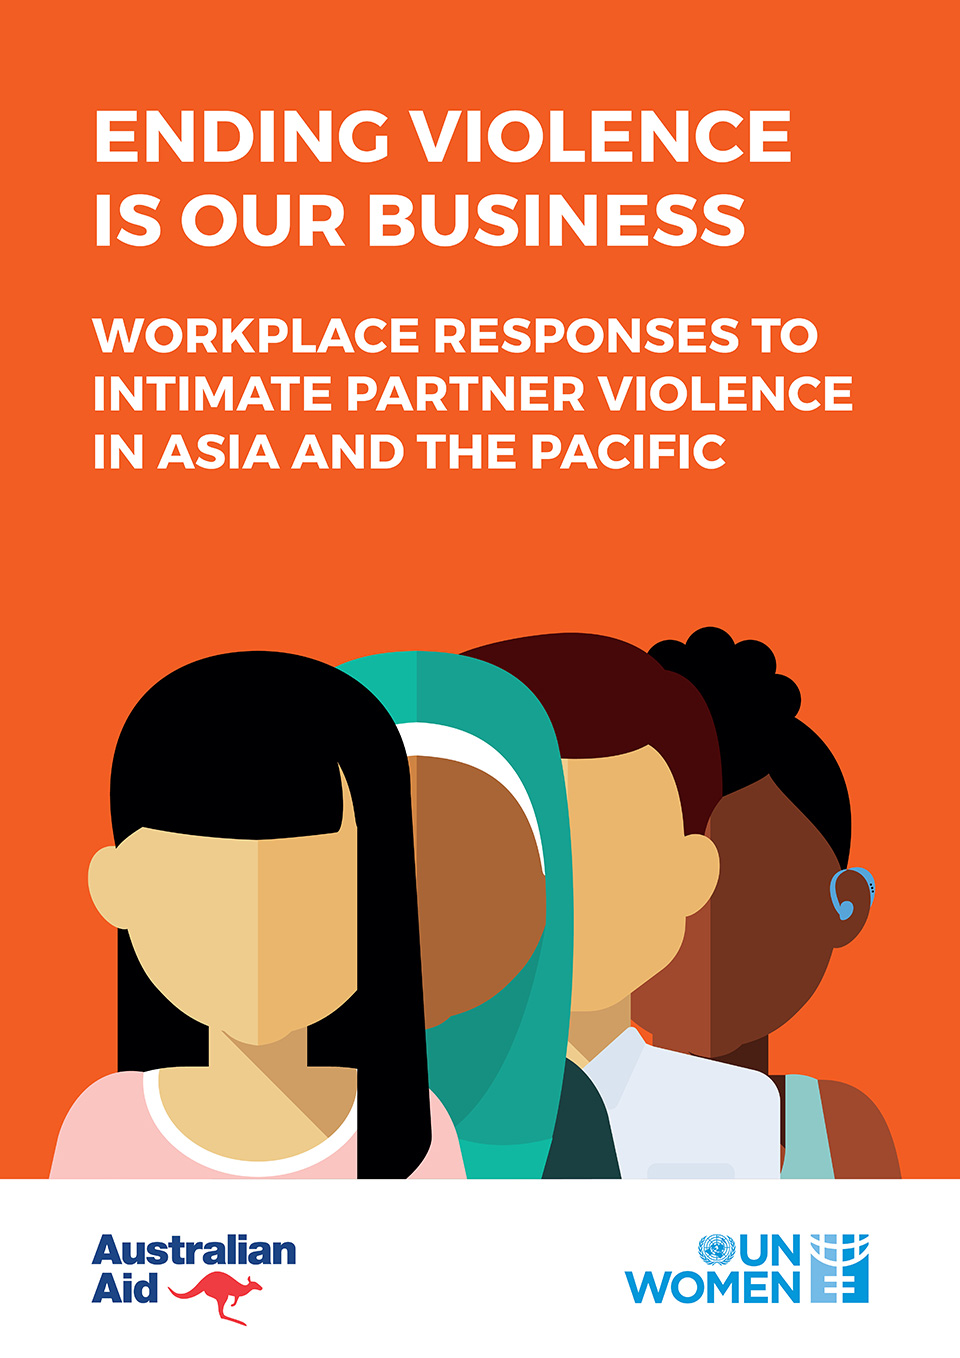 Ending Violence is Our Business: Workplace Responses to Intimate Partner Violence in Asia and the Pacific